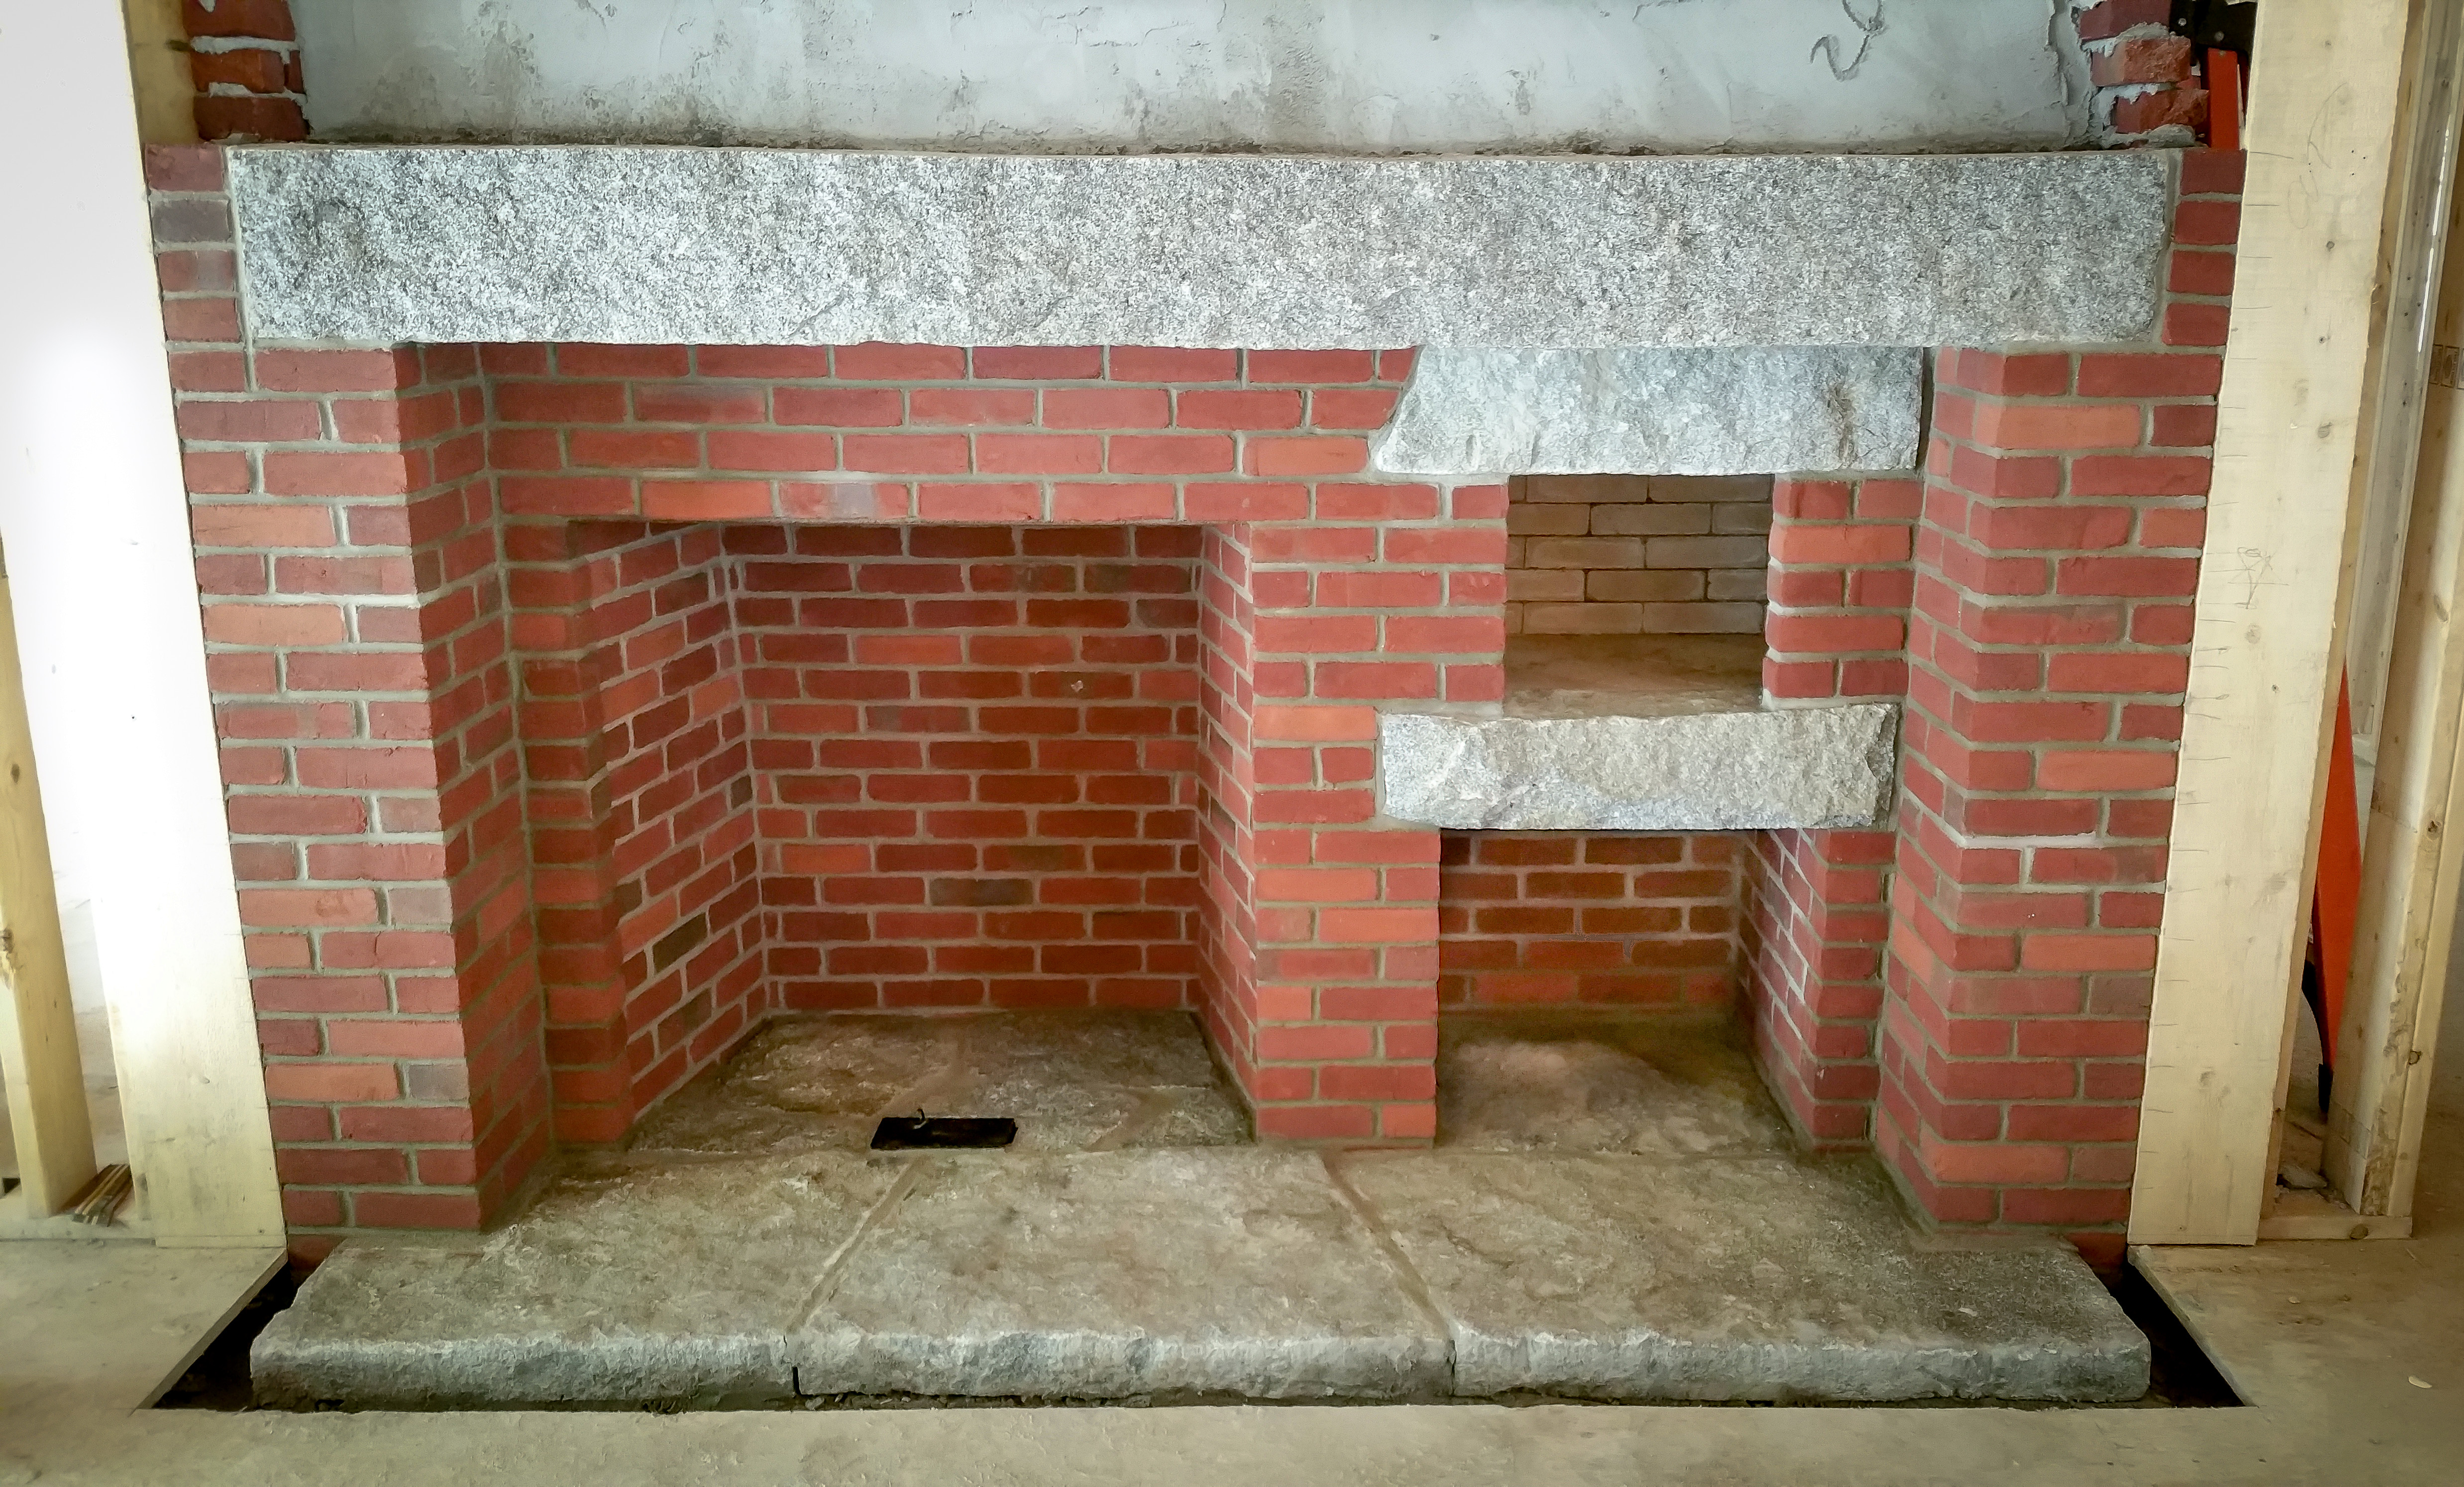 Fireplace and chimney construction contractor in massachusetts for Fireplace chimney construction